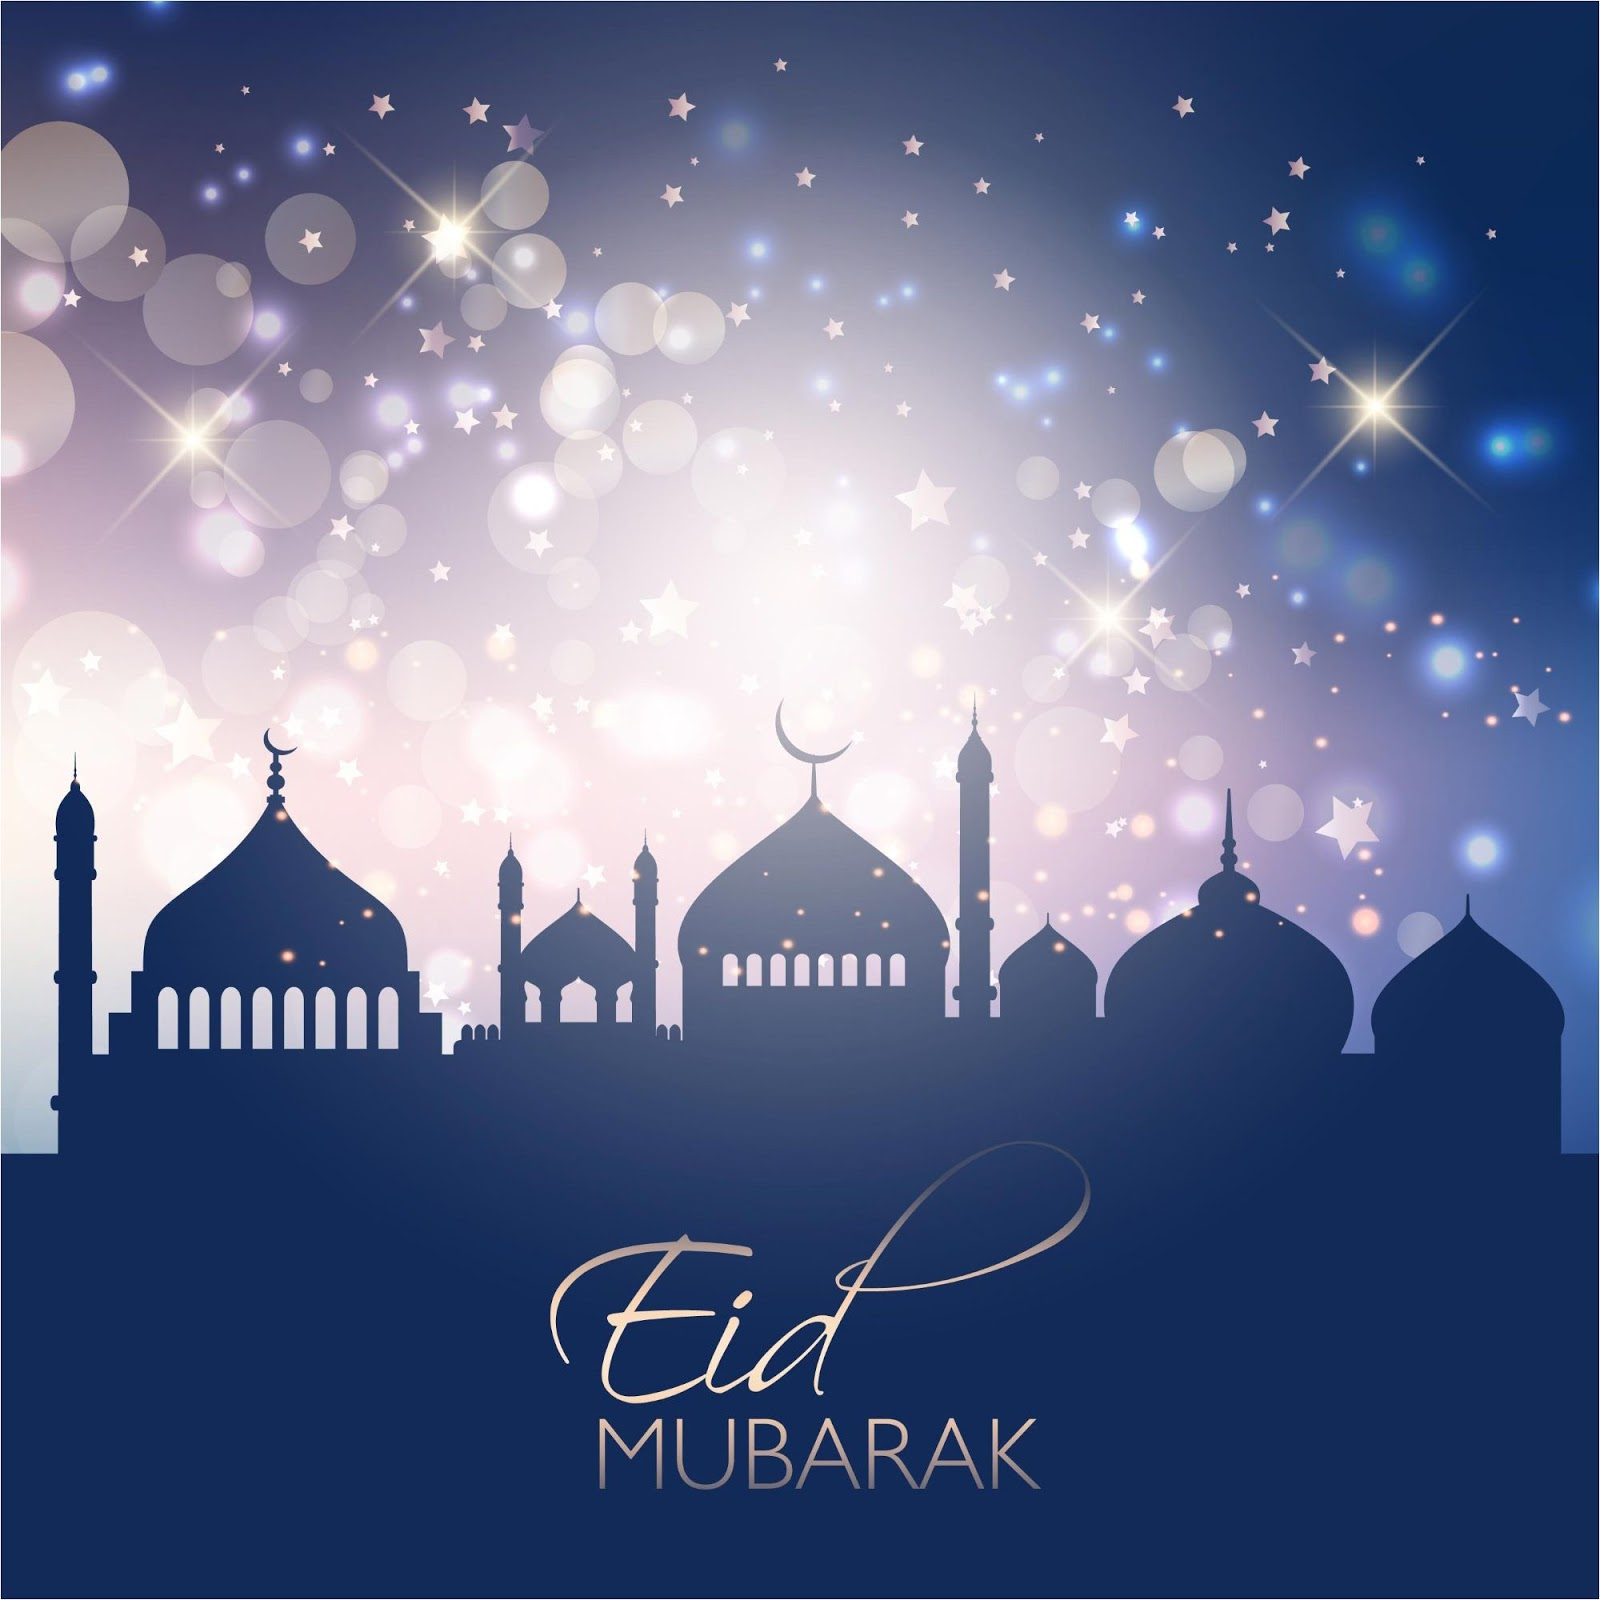 Eid Mubarak Images 2019 With Wishes Quotes And Status Yupstory